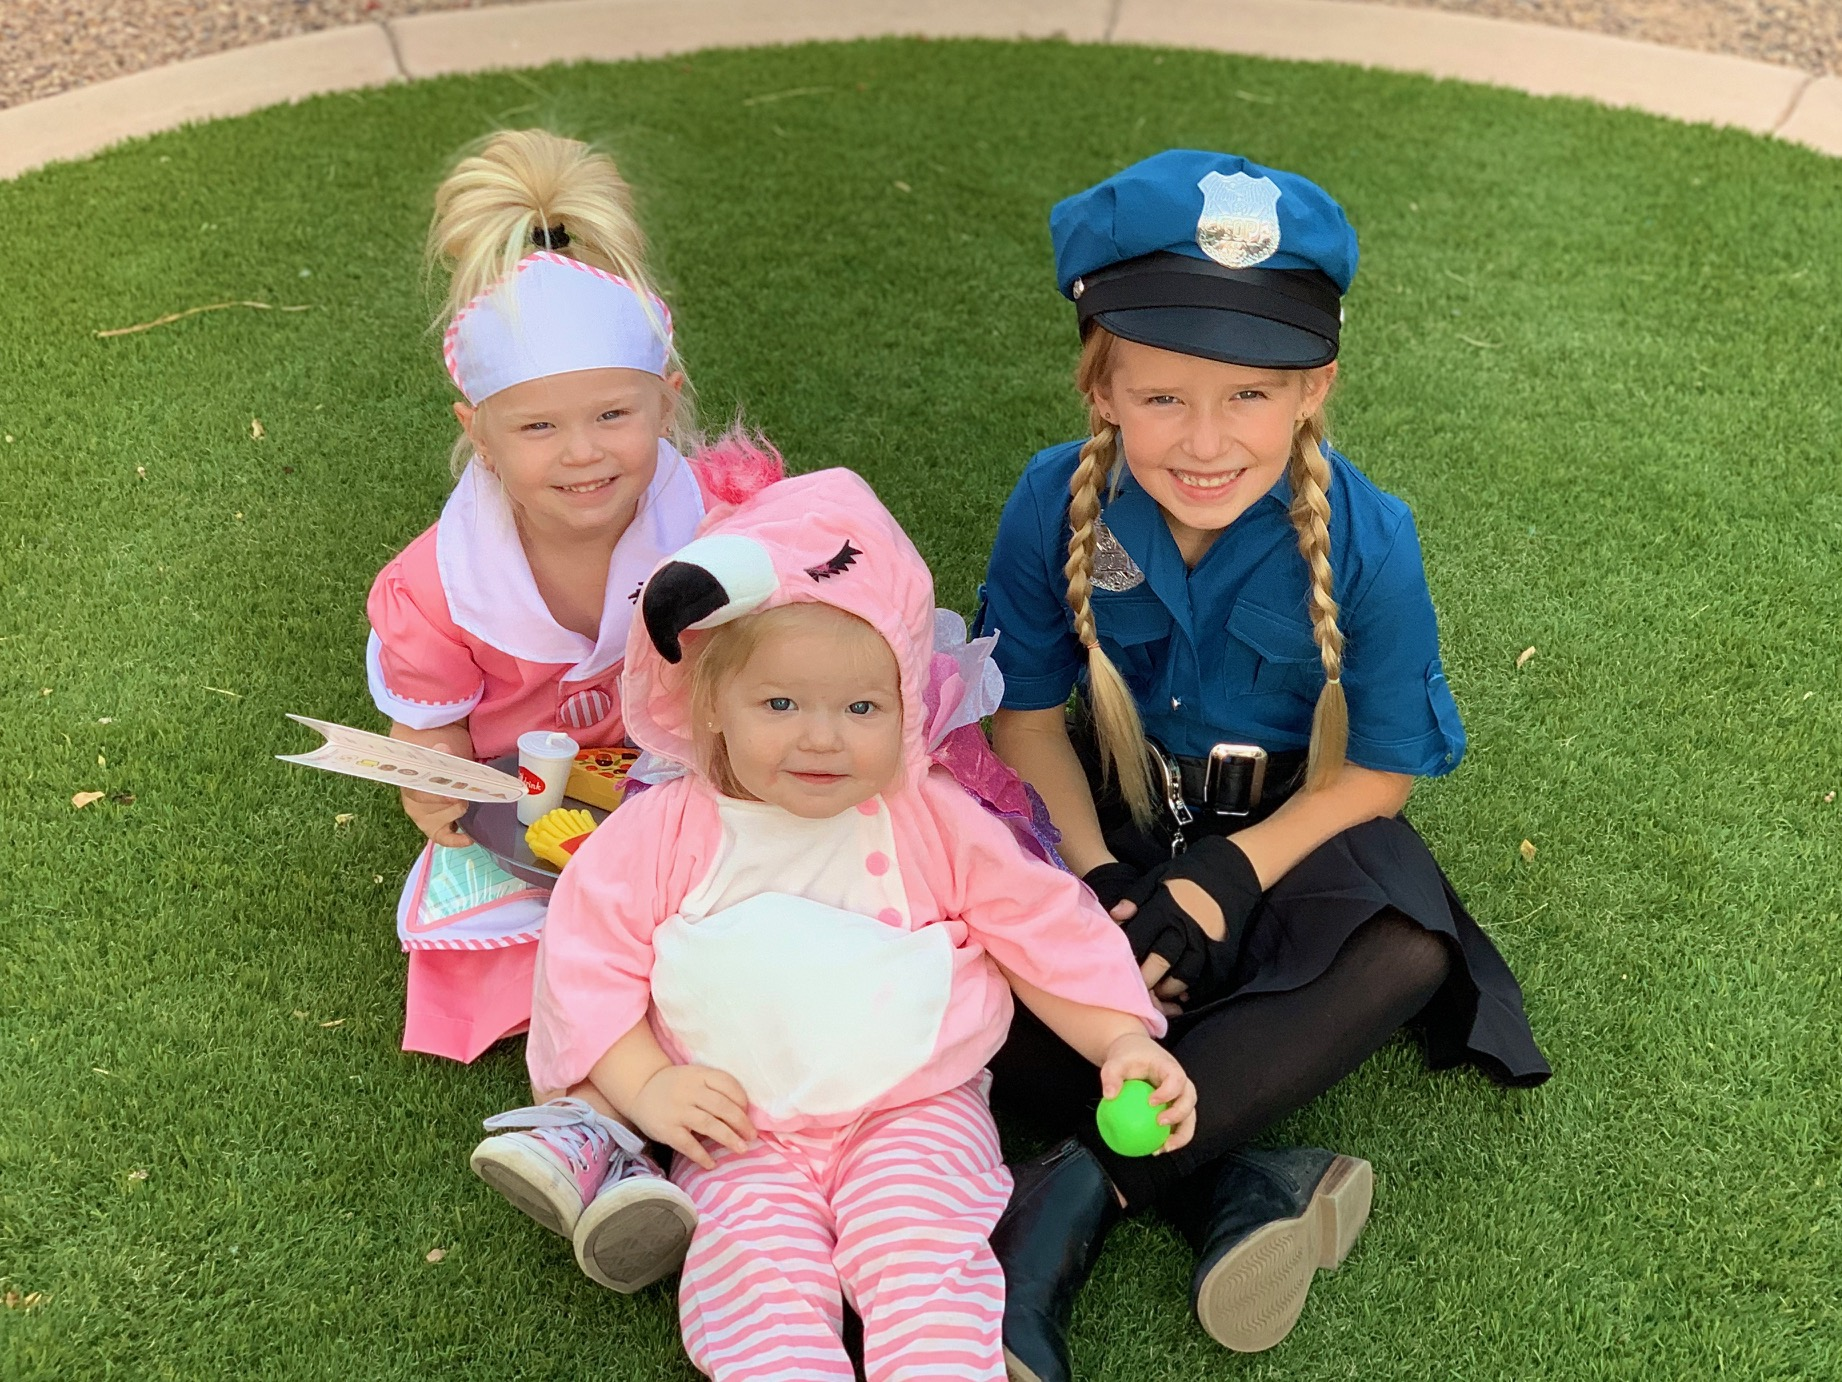 Halloween Costumes 2019! Our trip down Halloween costume memory lane and good costume ideas for kids and babies! (Cop, Waitress + Pink Flamingo)